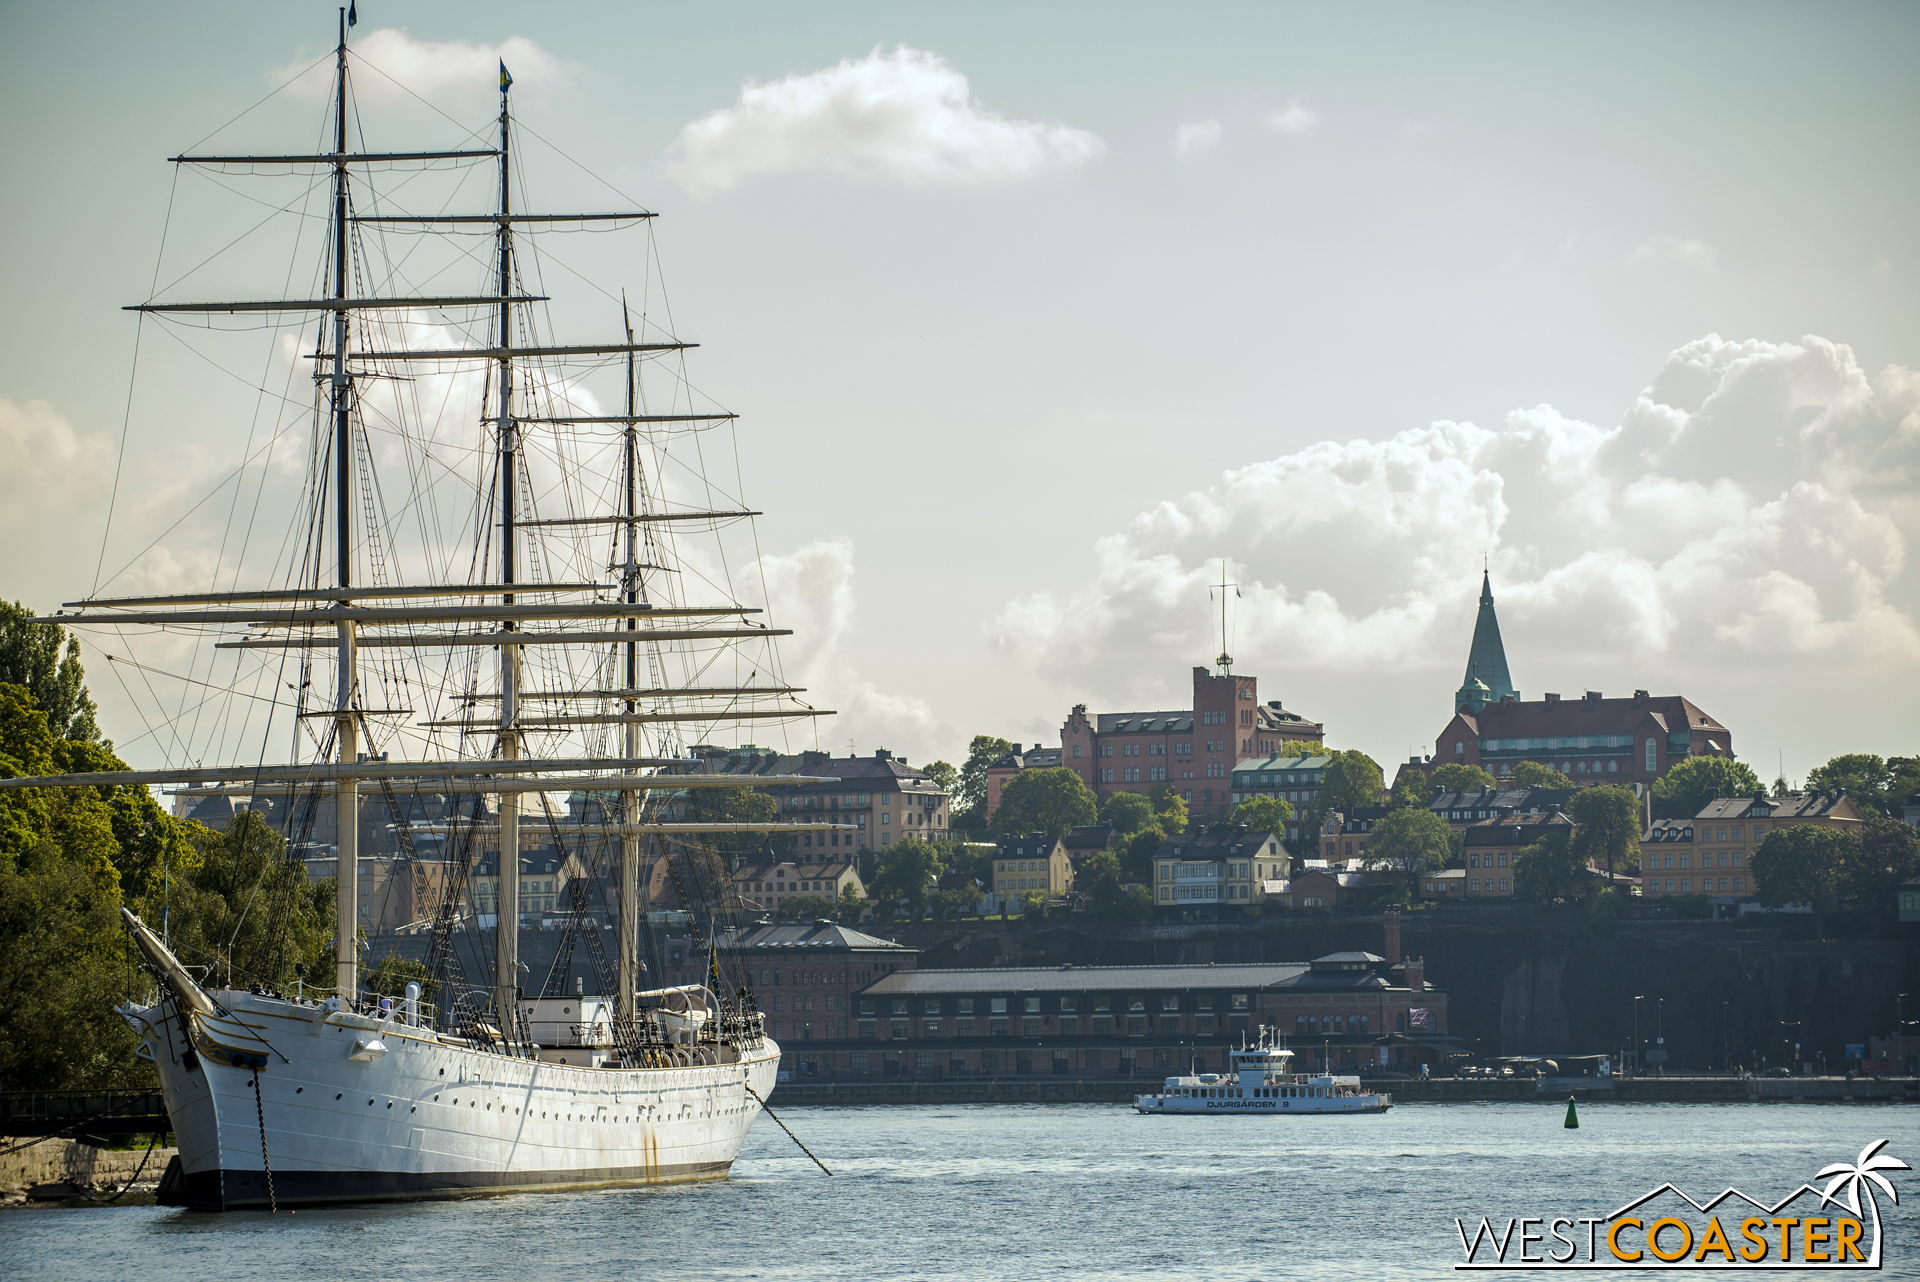 A ship is docked along the cost of Riddarholmen, with Sodermalm visible in the background.